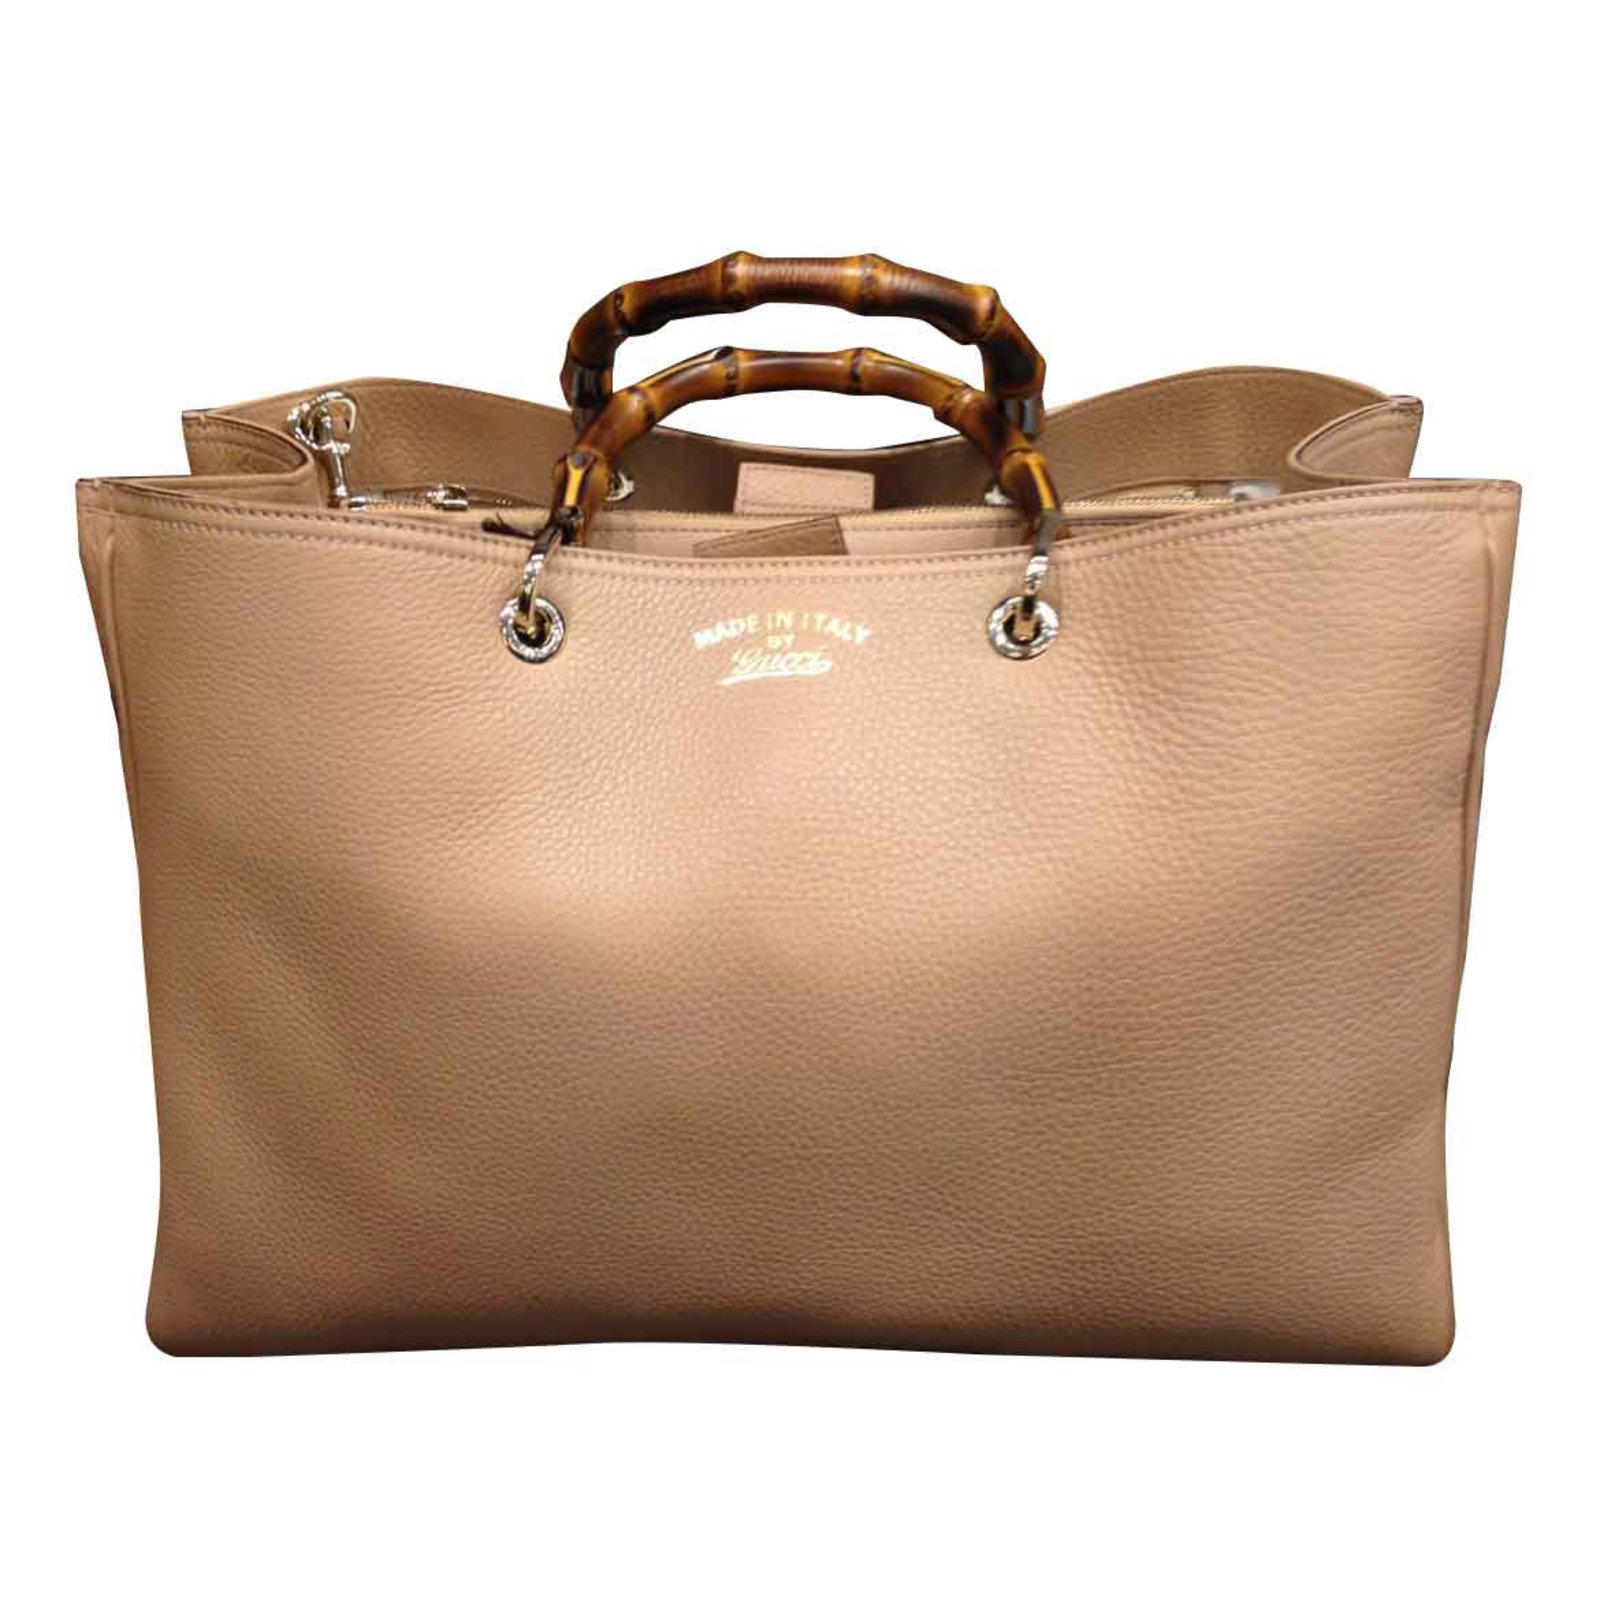 c4d30e72d88b Gucci GUCCI BAMBOO BAG NEW NEVER WORNED Totes Leather Beige ref.28081